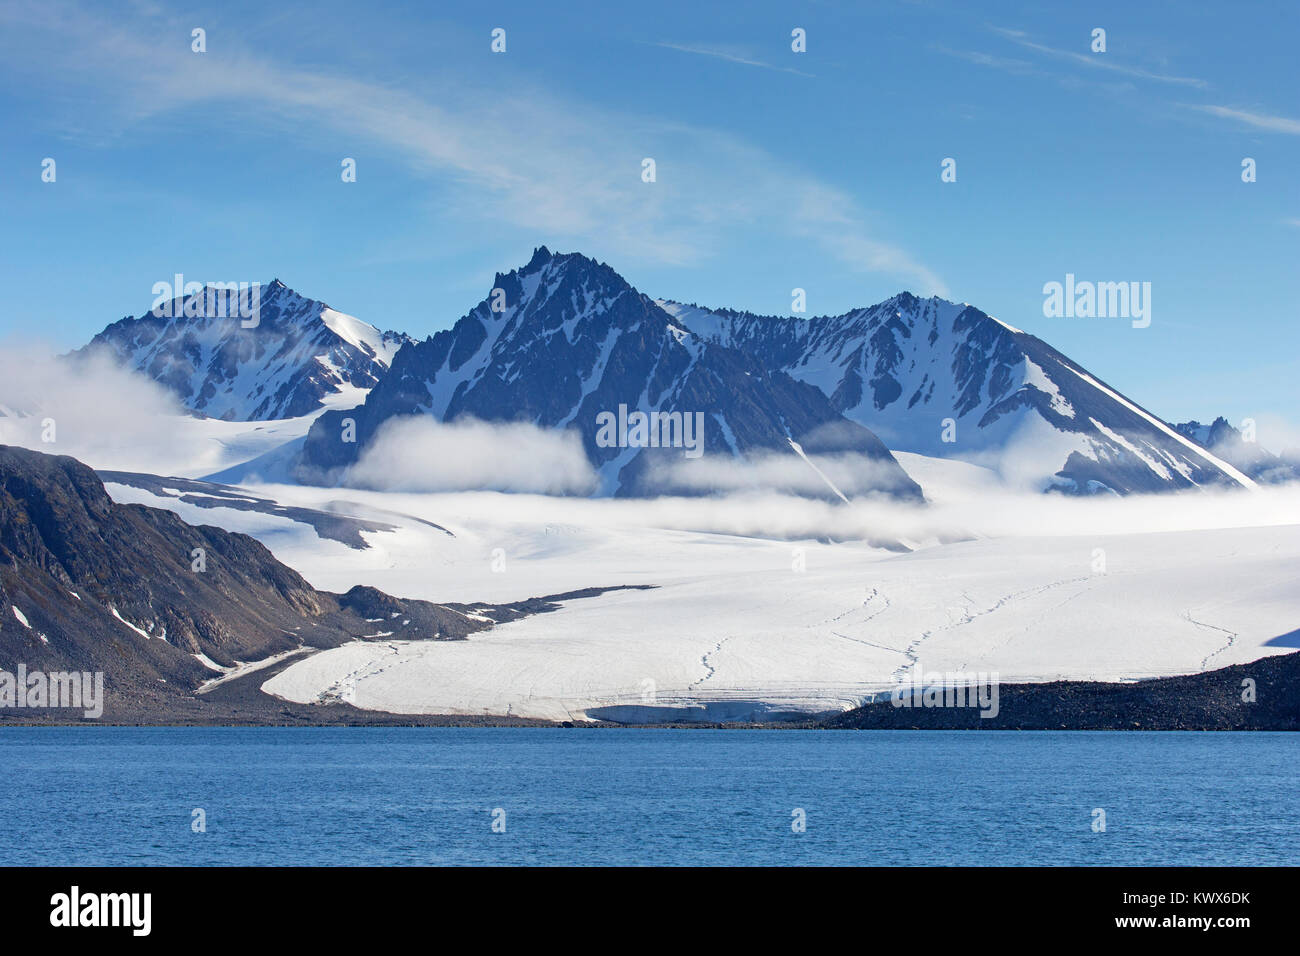 Waggonwaybreen / Waggonway Glacier debouches into Magdalenefjorden in Albert I Land at Spitsbergen / Svalbard, Norway - Stock Image